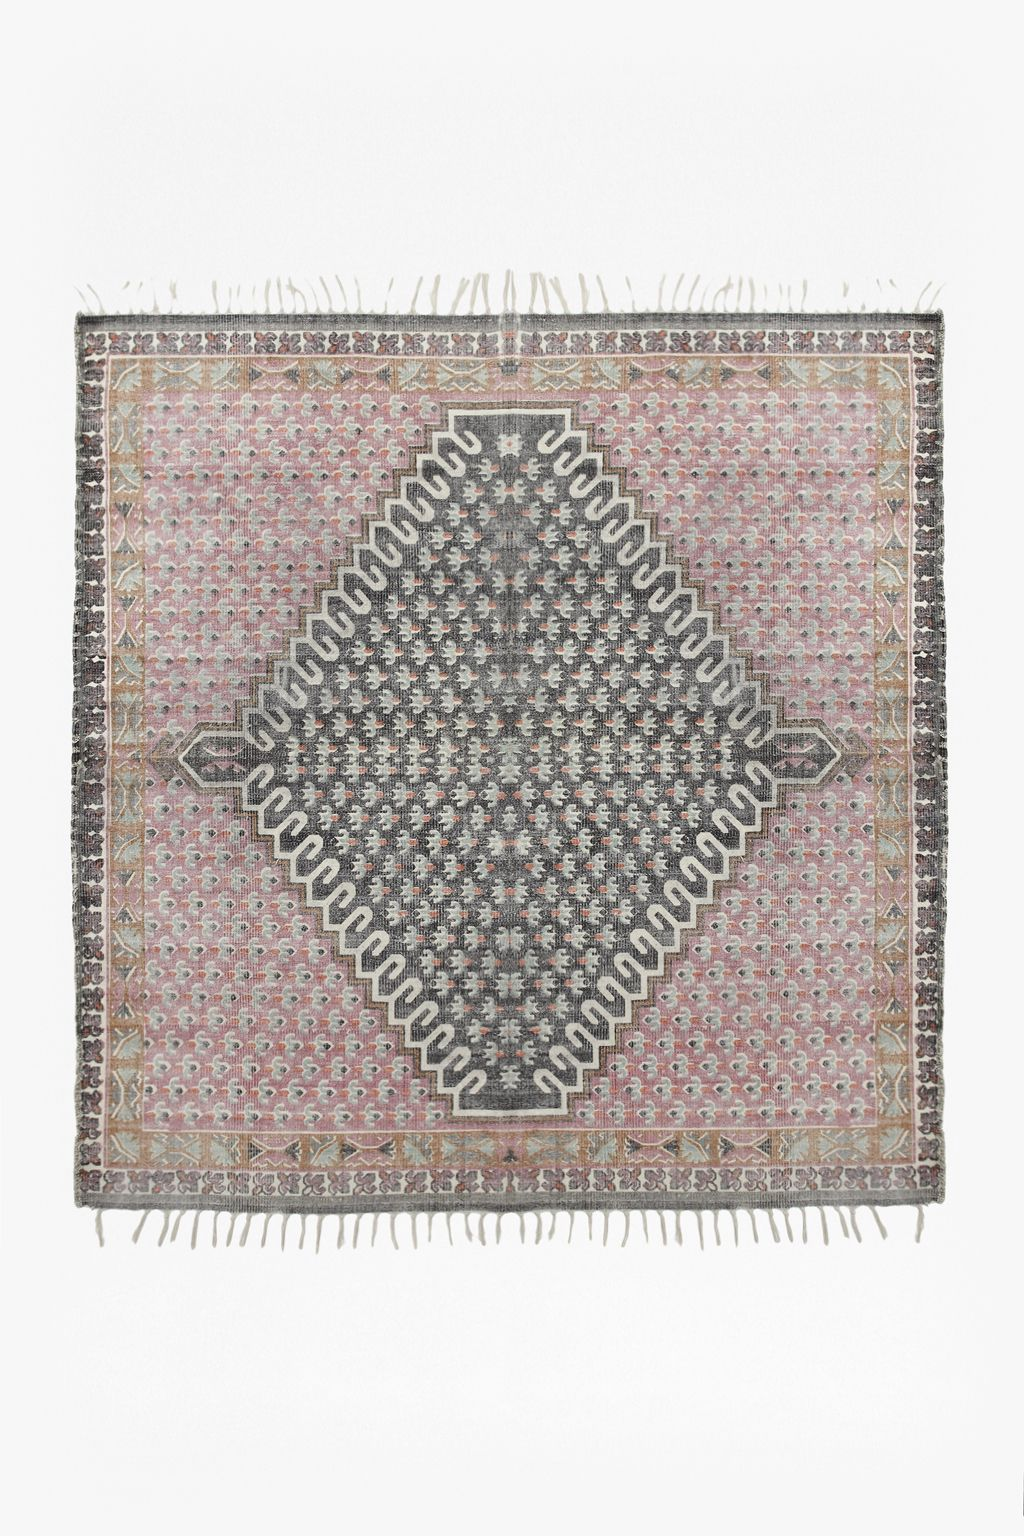 Ul Li Screen Printed Durrie Rug Block Fl Design Tels On Two Sides With Looped Edges Remaining Please Note